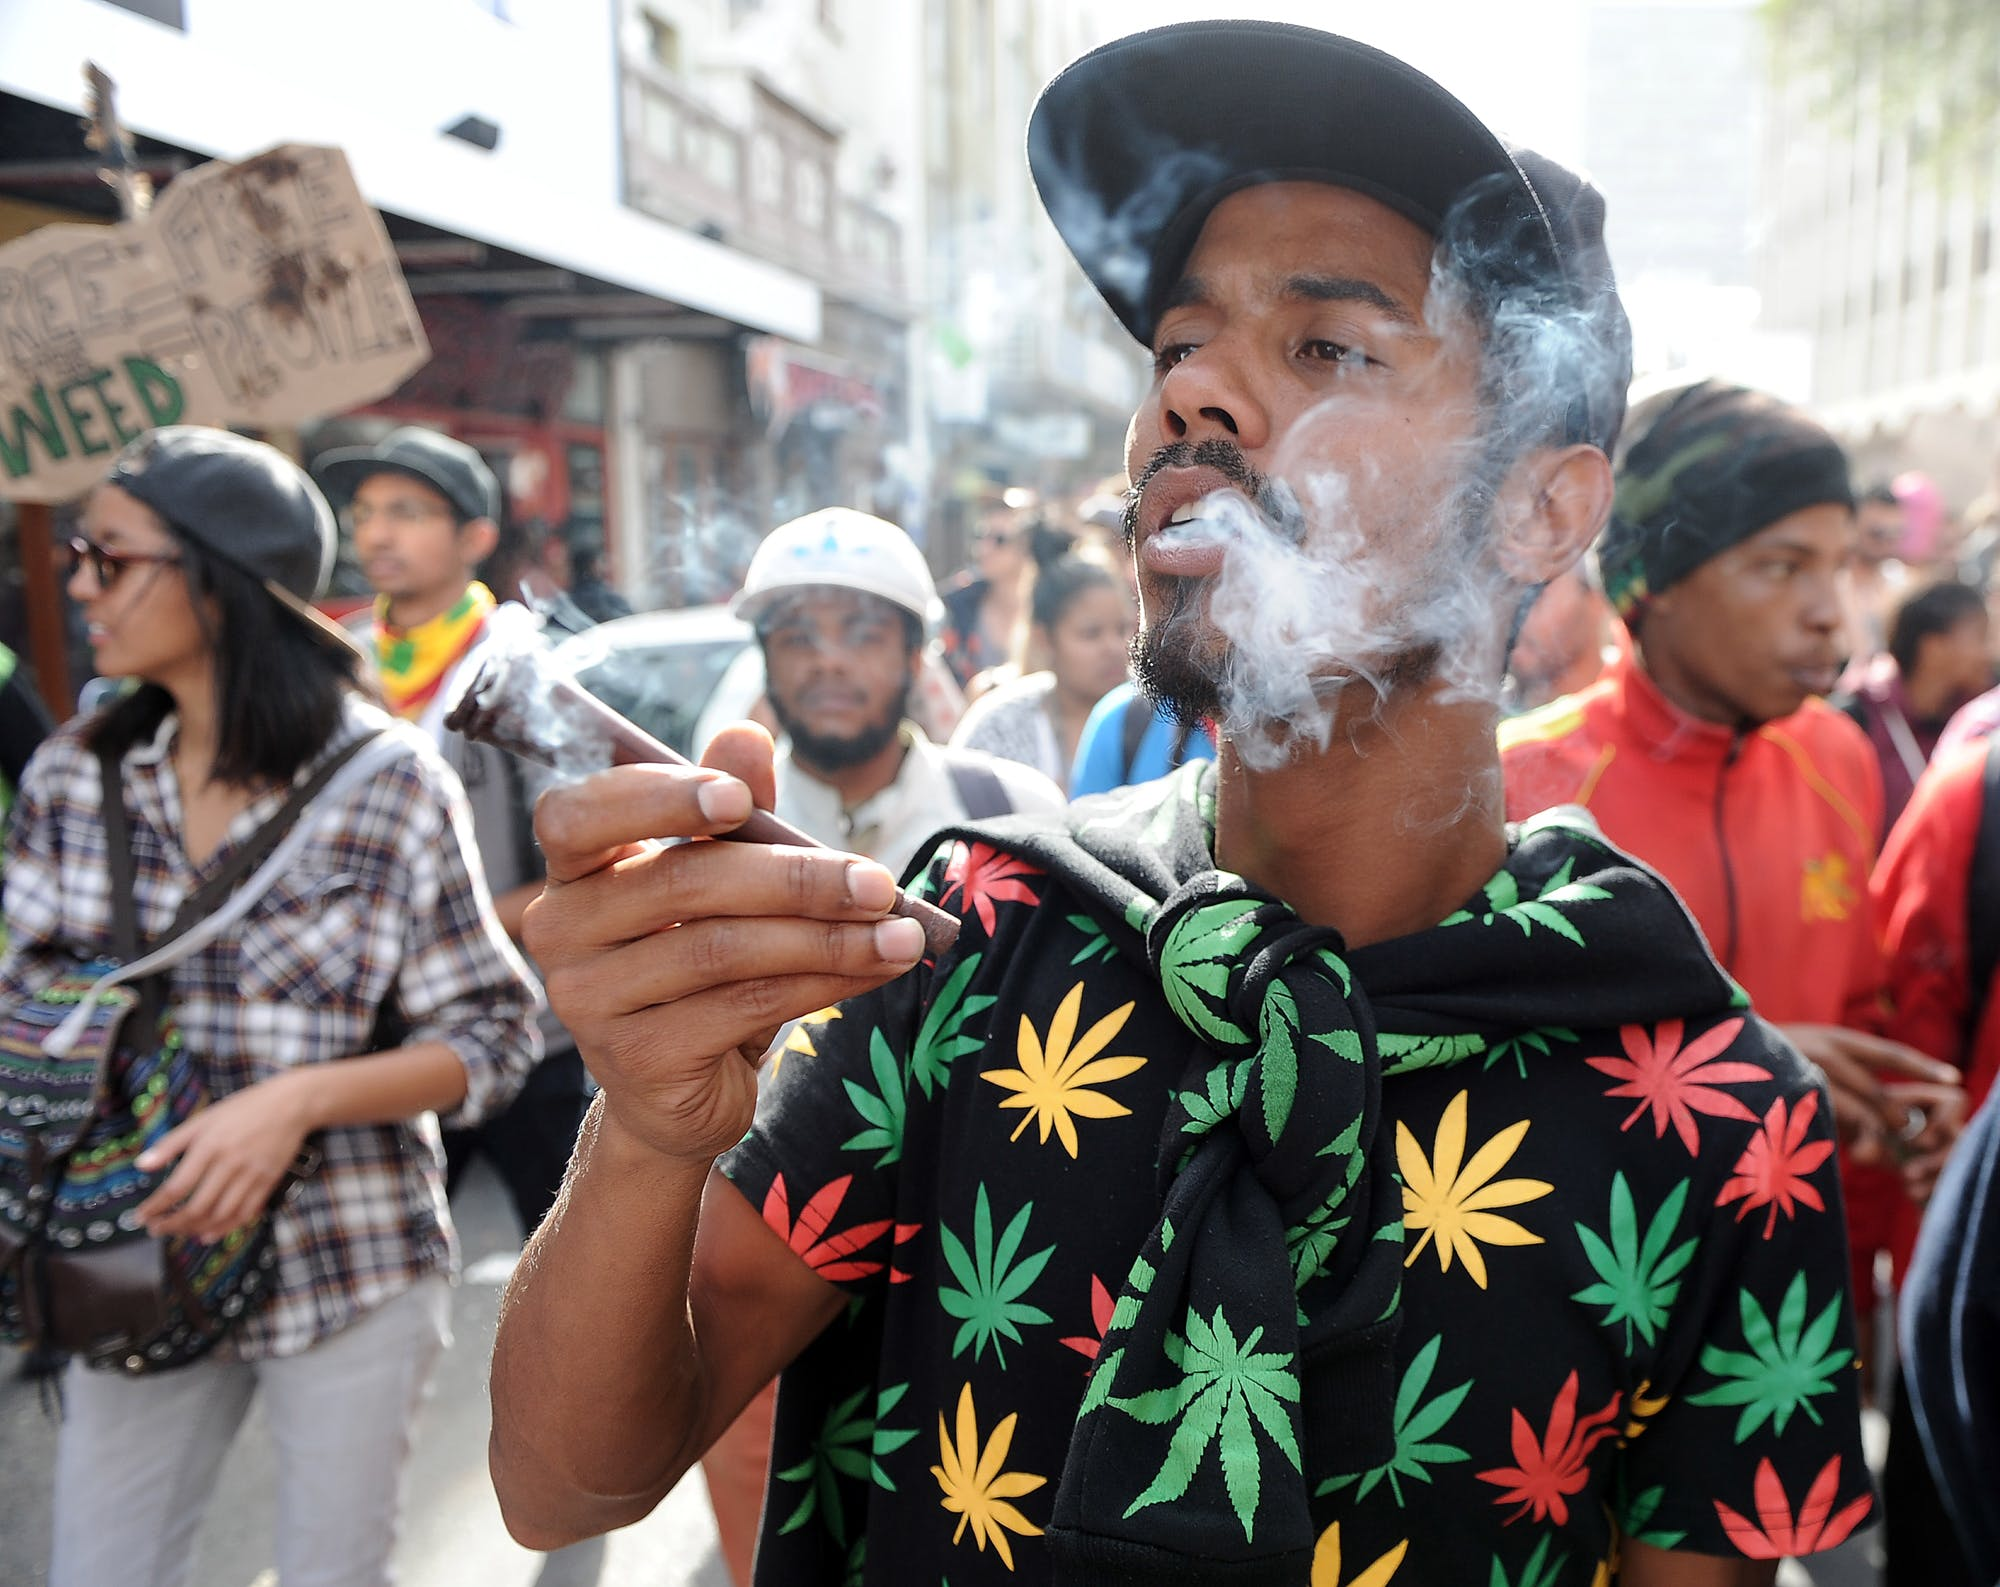 Africa on the verge of a weed race 2 of 3 How to use weed for jamming and listening to music